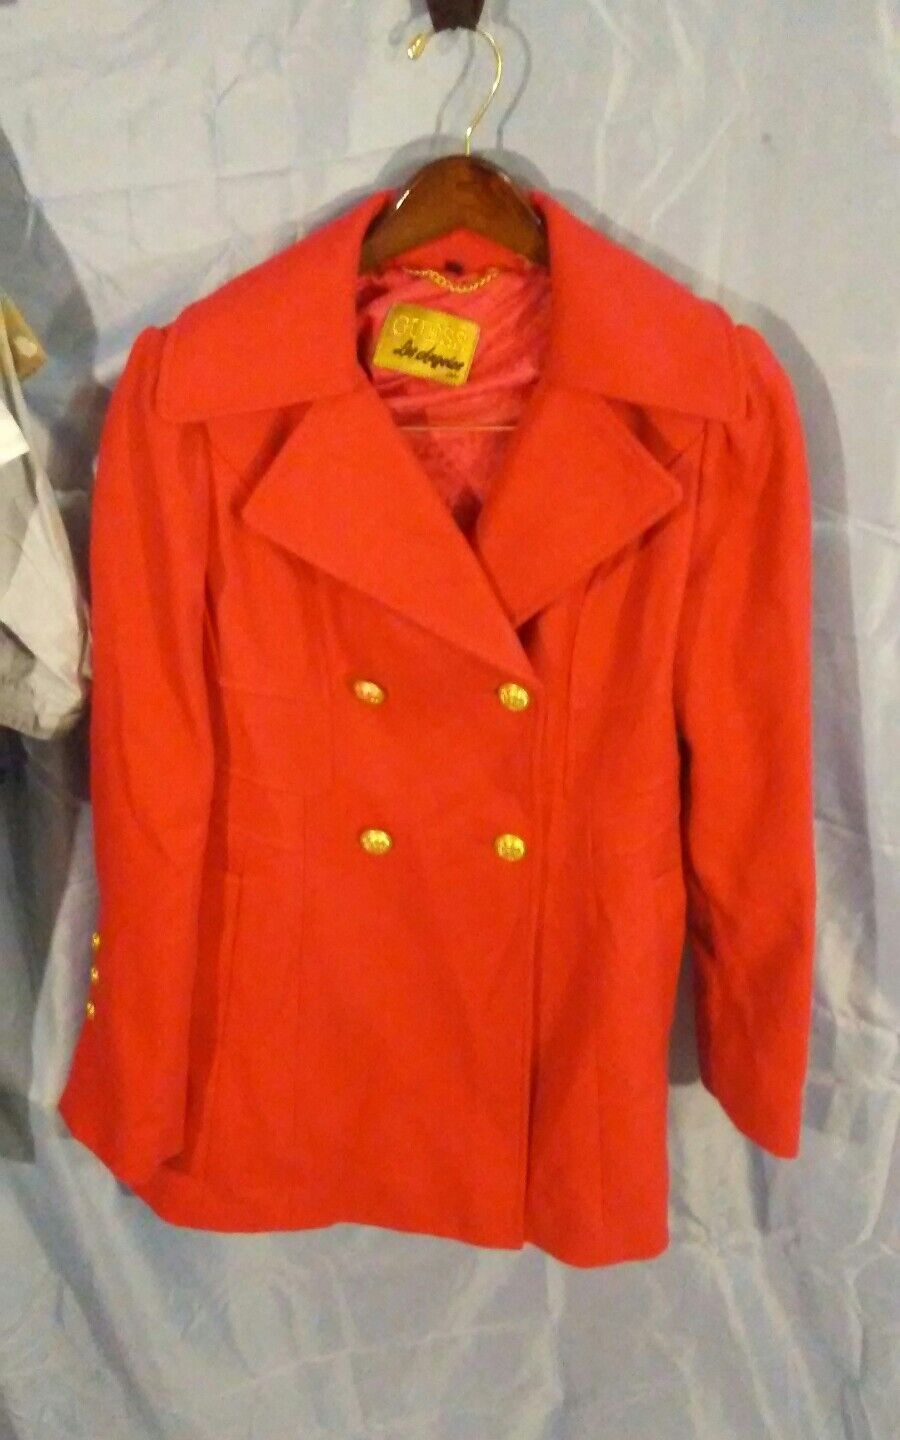 GUESS GUESS GUESS Los Angeles Women's Red Wool Double Breasted Dress Coat sz L b4c63d